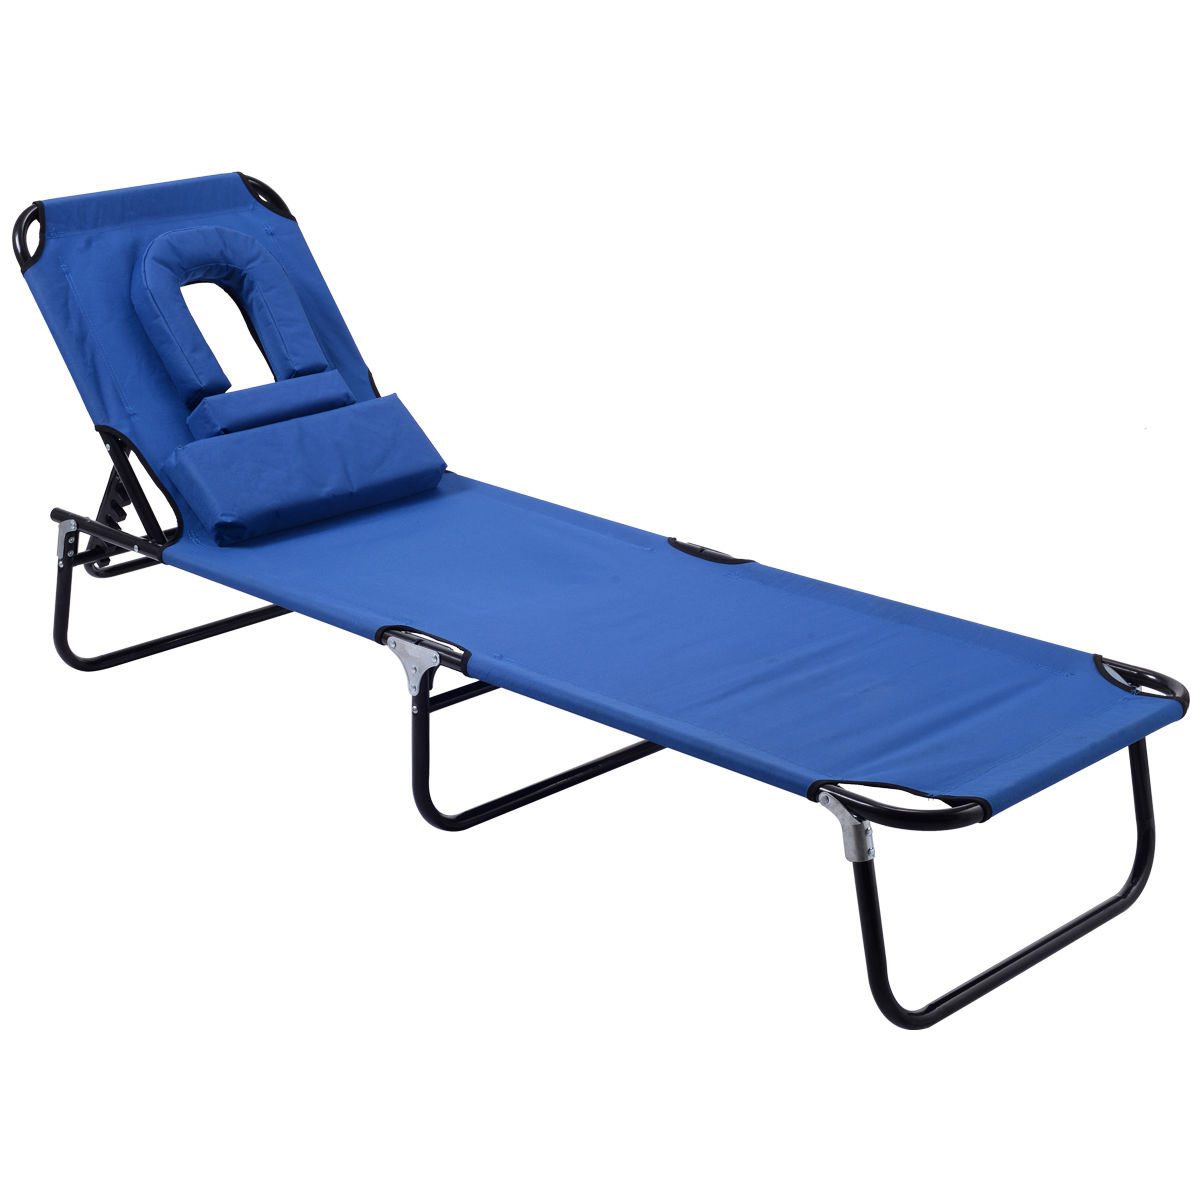 Goplus Foldable Patio Chaise Lounge Chair Bed Outdoor Beach Camping  Recliner Pool Yard